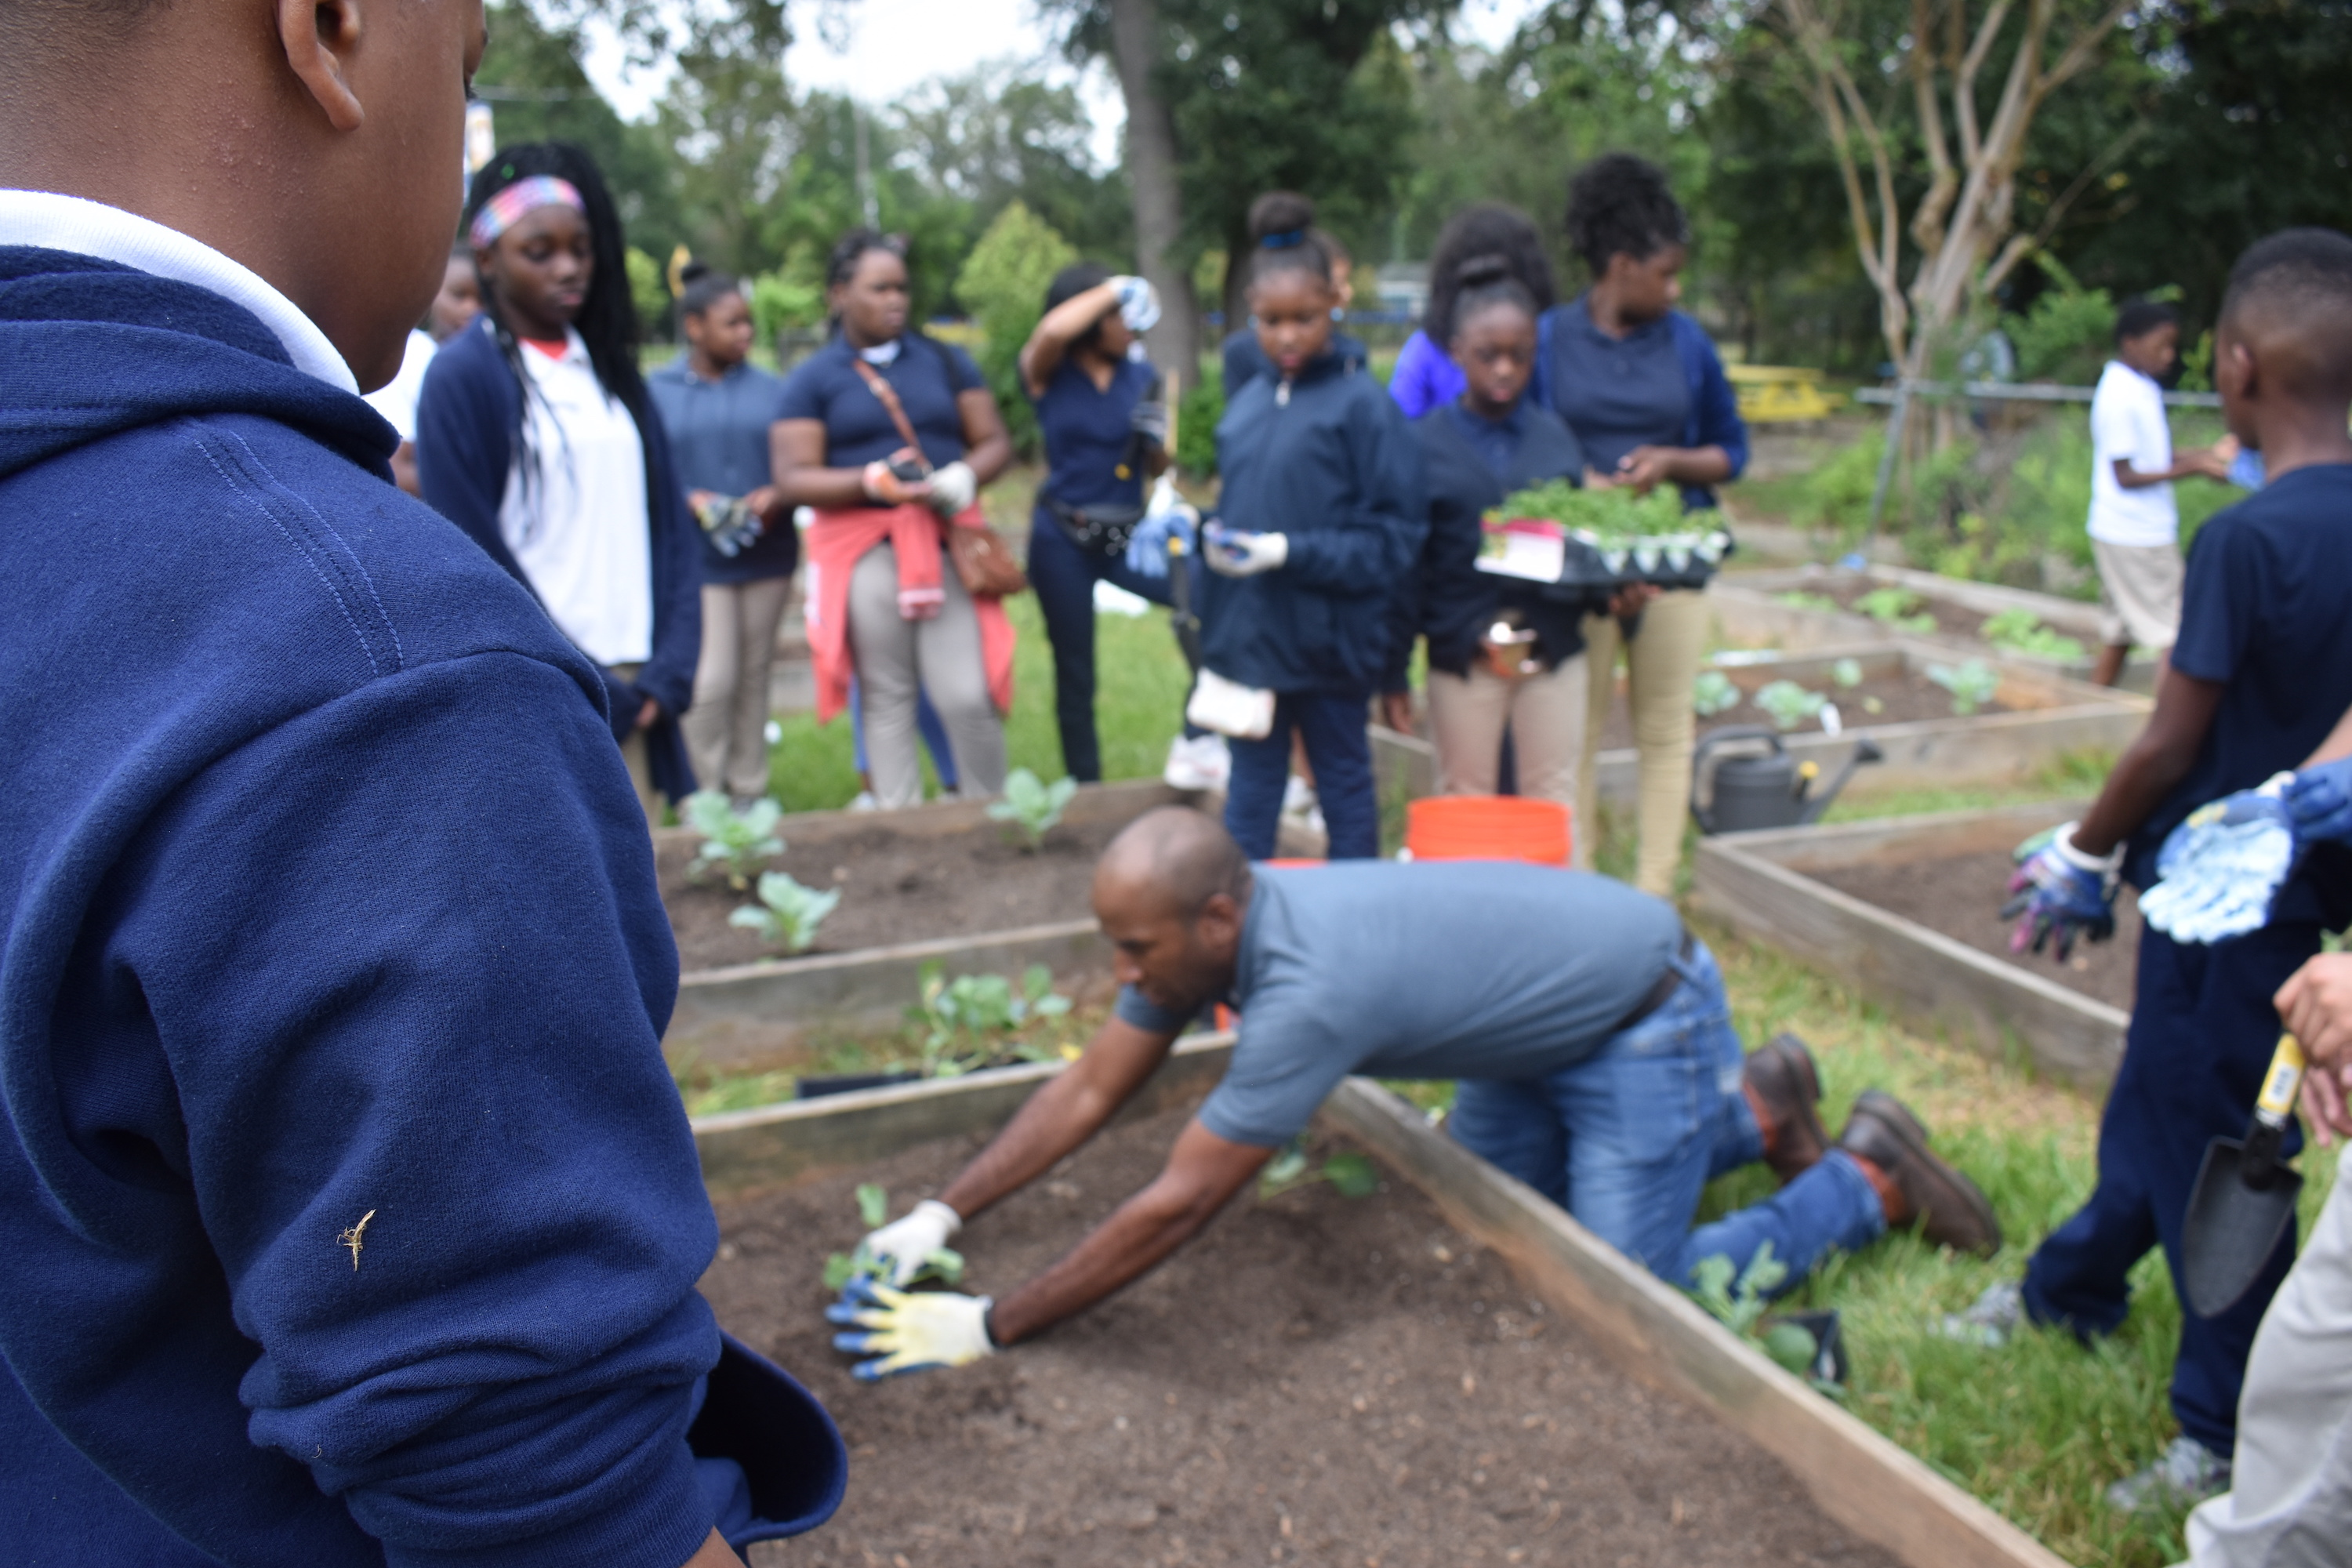 A gardener teaches students the proper way to plant crops.